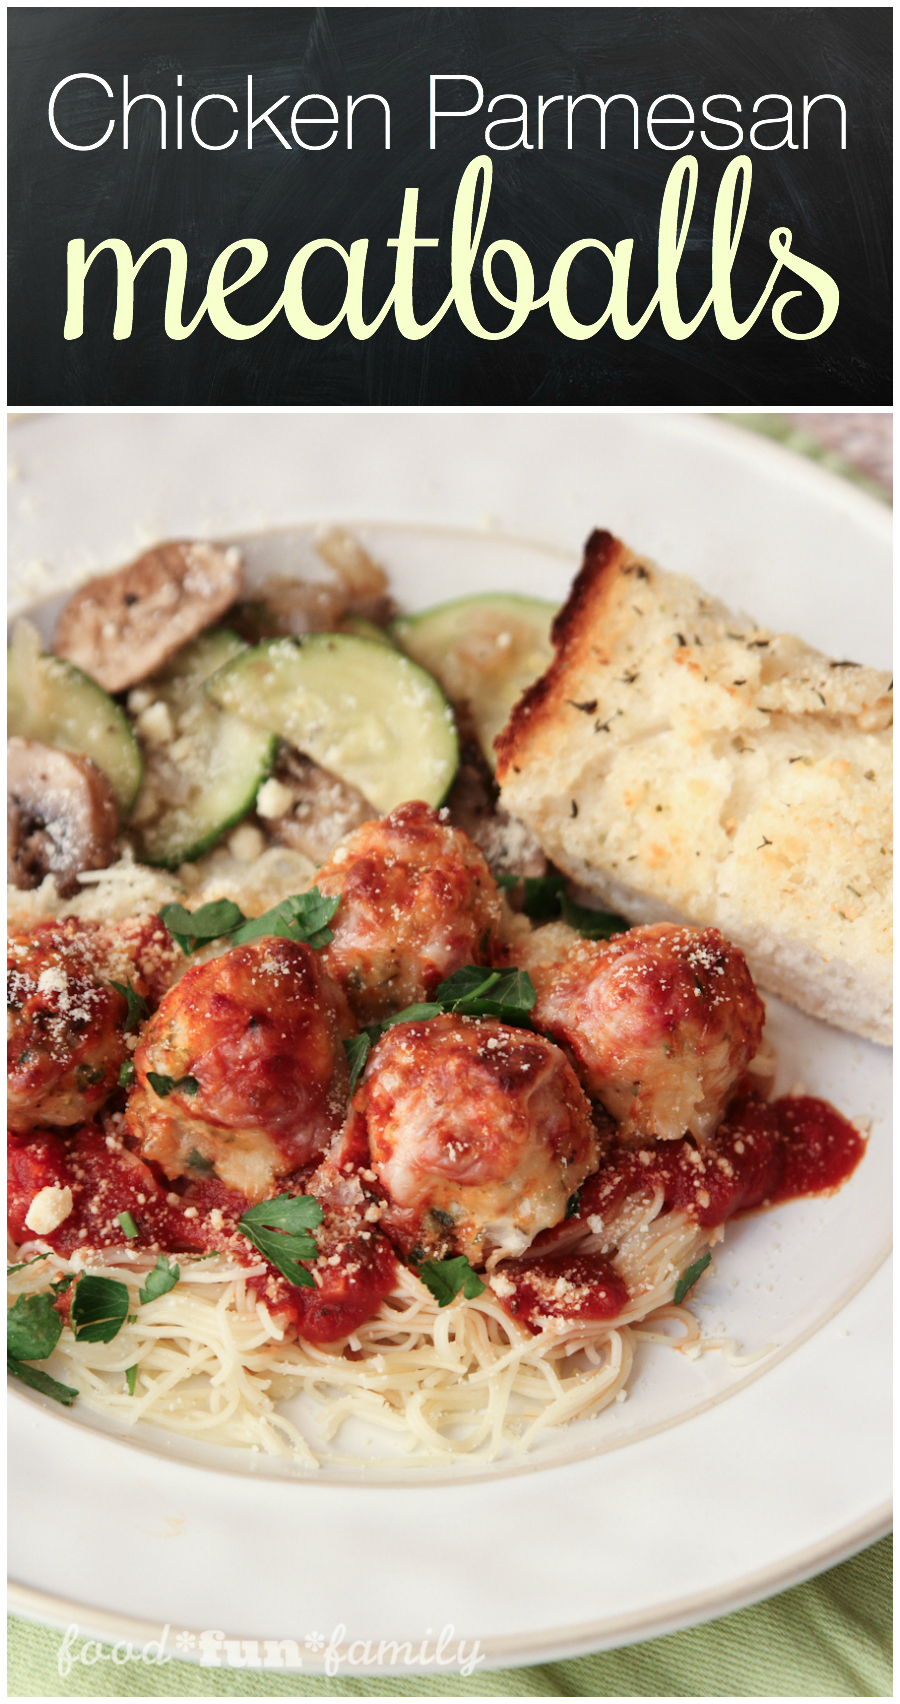 Chicken parmesan meatballs - a fun twist on traditional spaghetti and meatballs and chicken parmesan. Your whole family will love it!